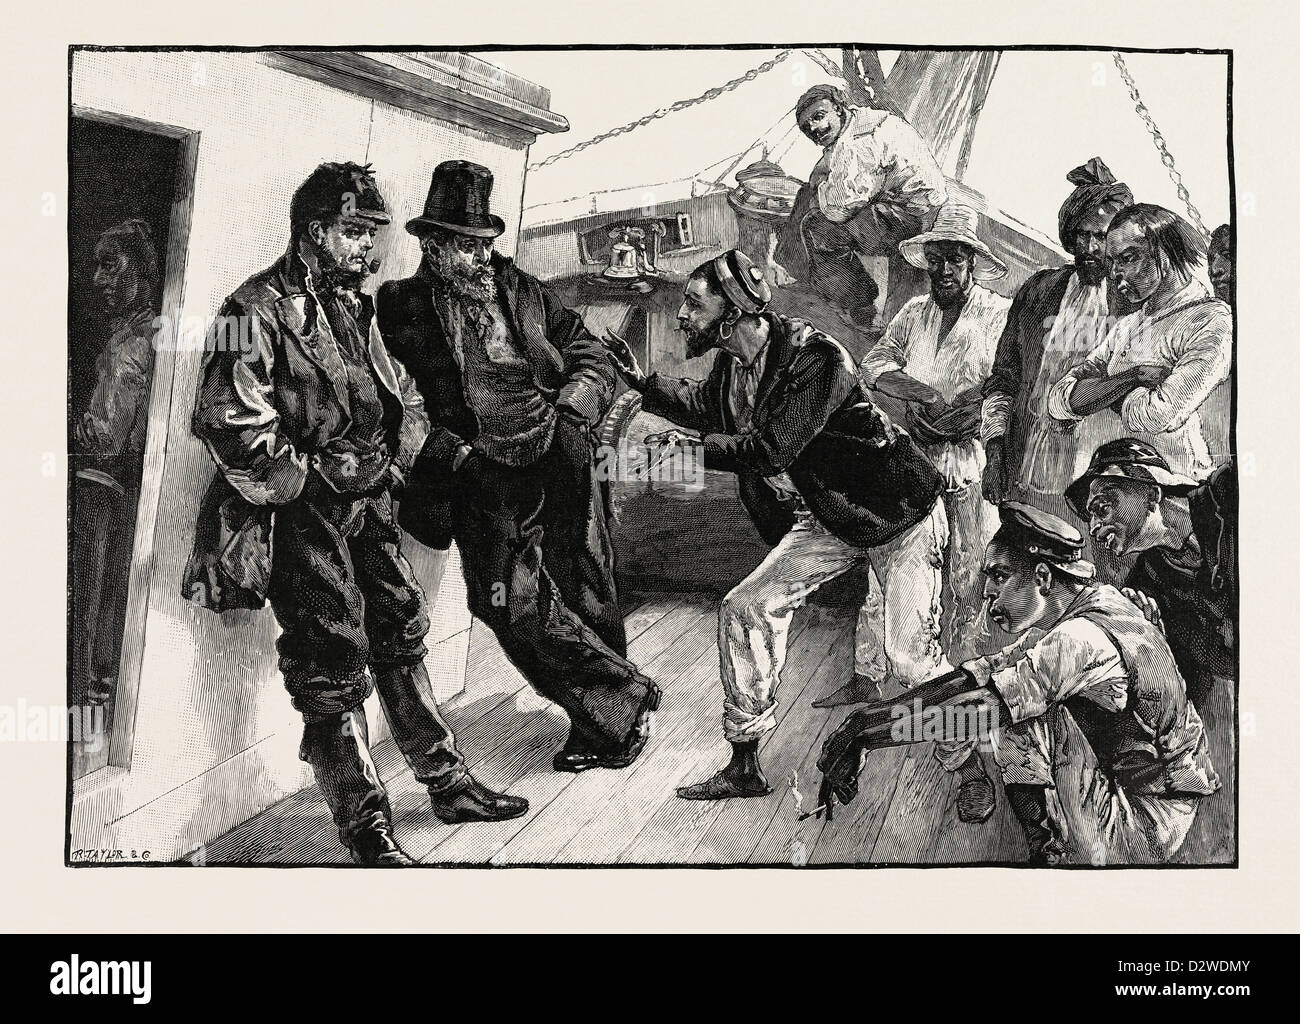 WHILE HE ADDRESSED THE BOATMEN THE OTHERS STOOD DOGGEDLY LOOKING ON: DRAWN BY W.H. OVEREND. - Stock Image